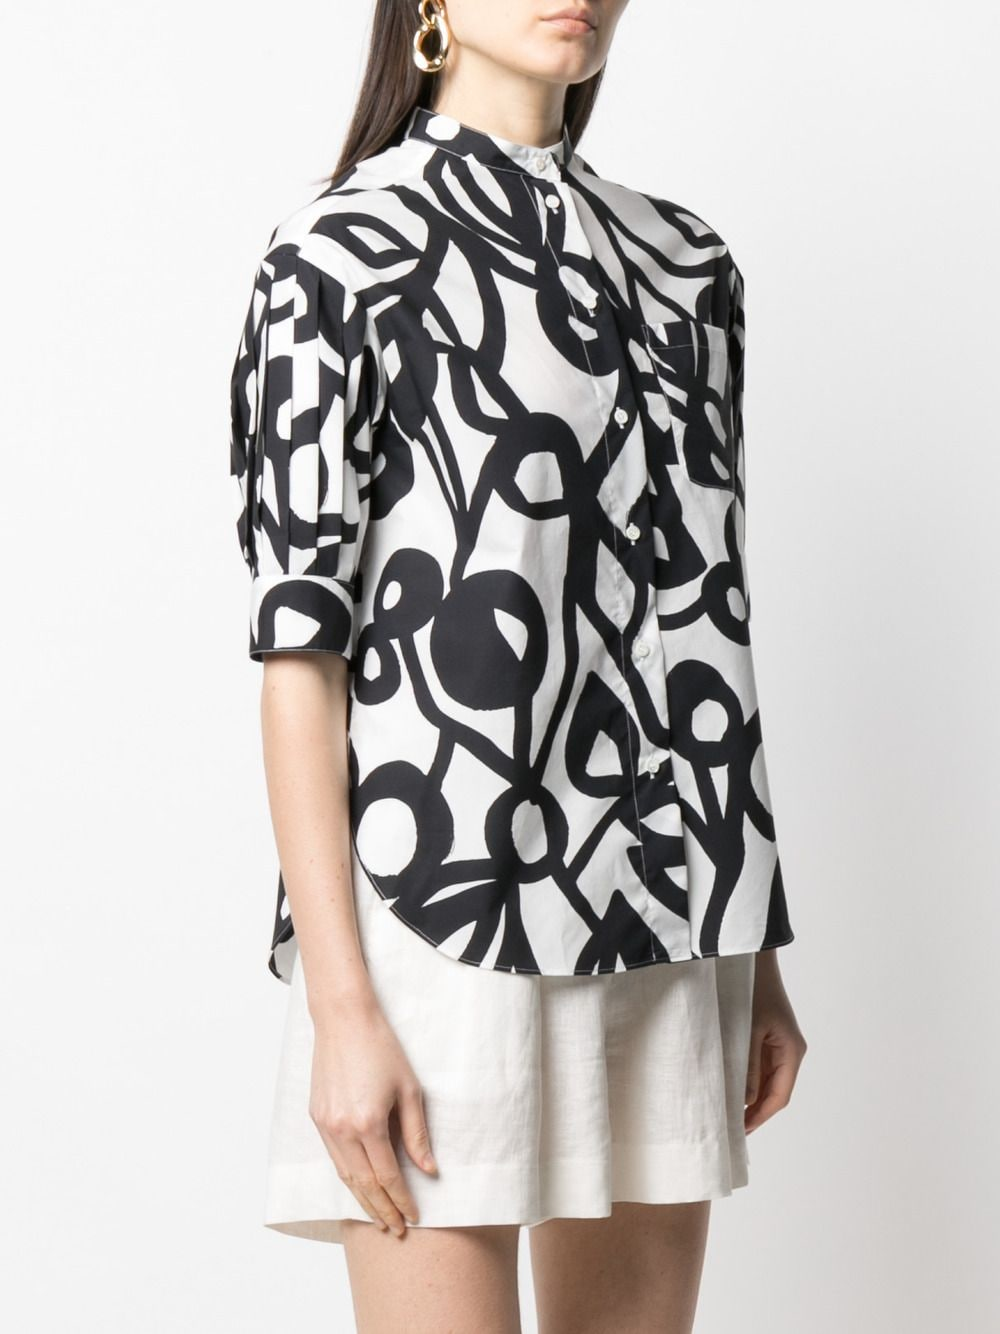 White and black cotton geometric floral poplin shirt  ASPESI |  | 5413-F28861241